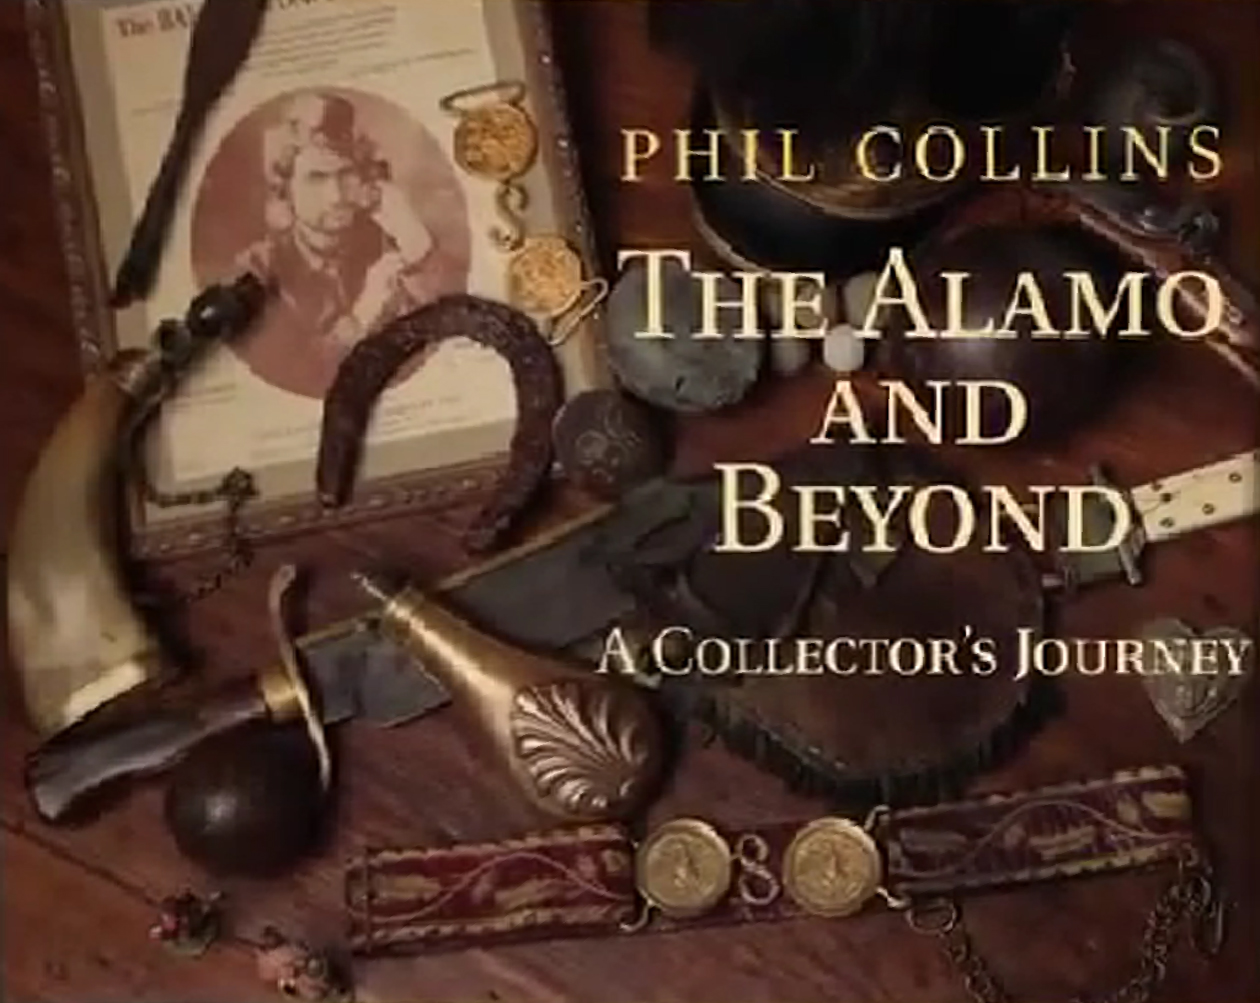 The Alamo And Beyond - A Collector's Journey